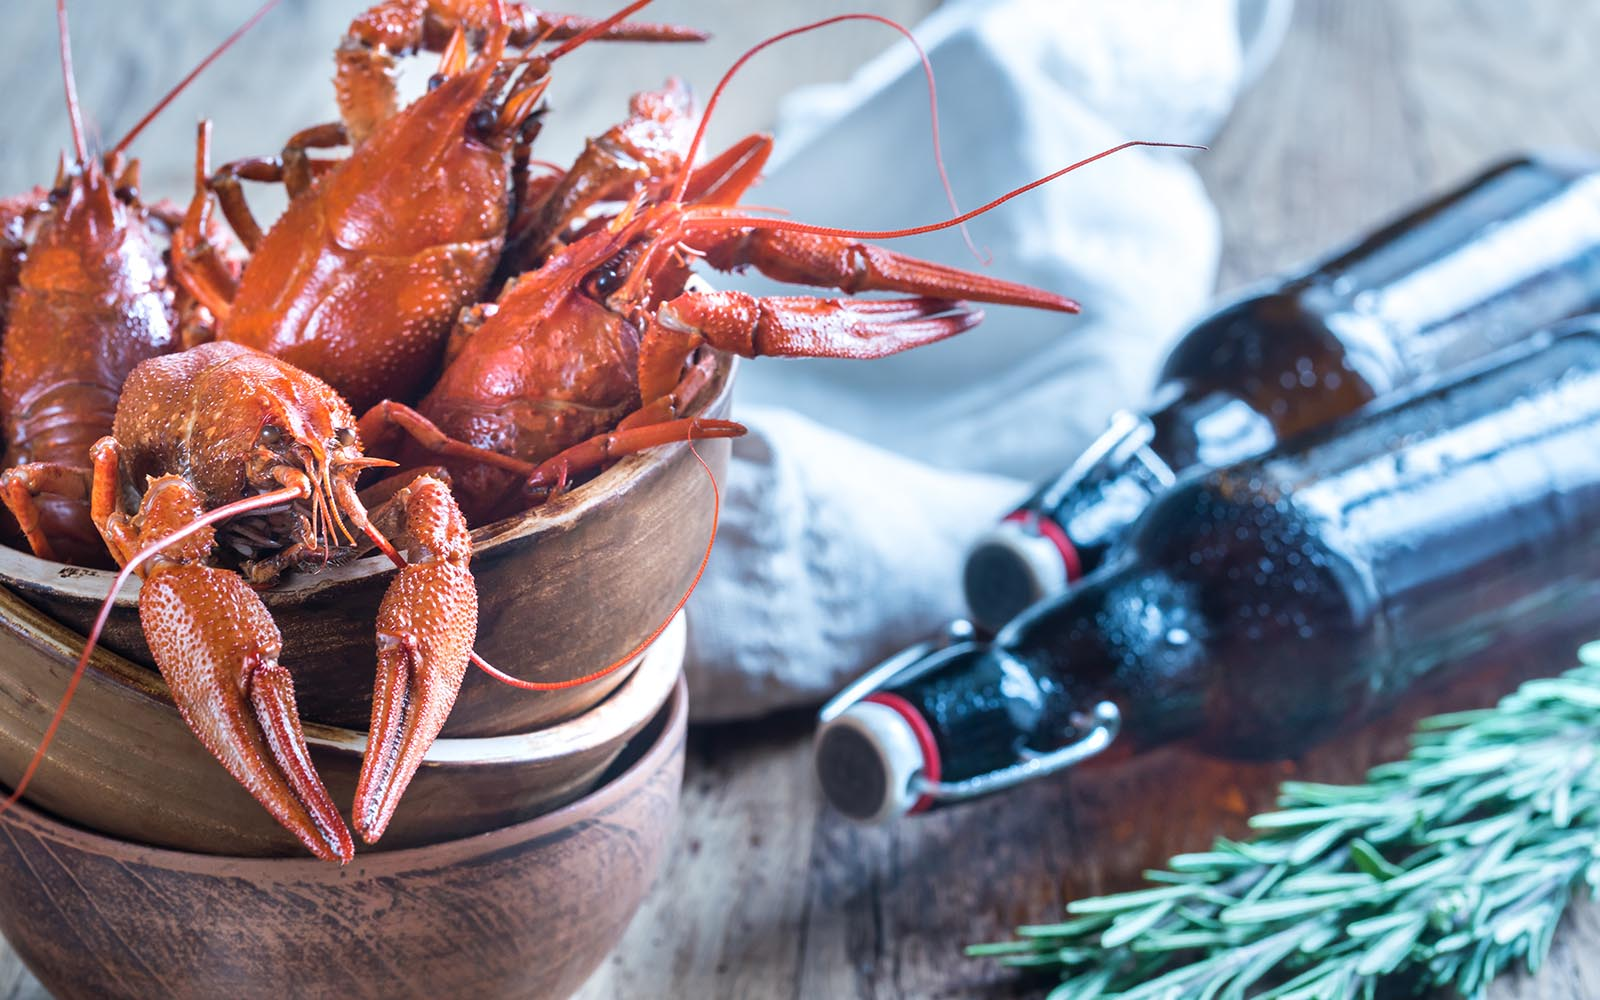 Bowl Of Boiled Crayfish With Bottles Of Beer